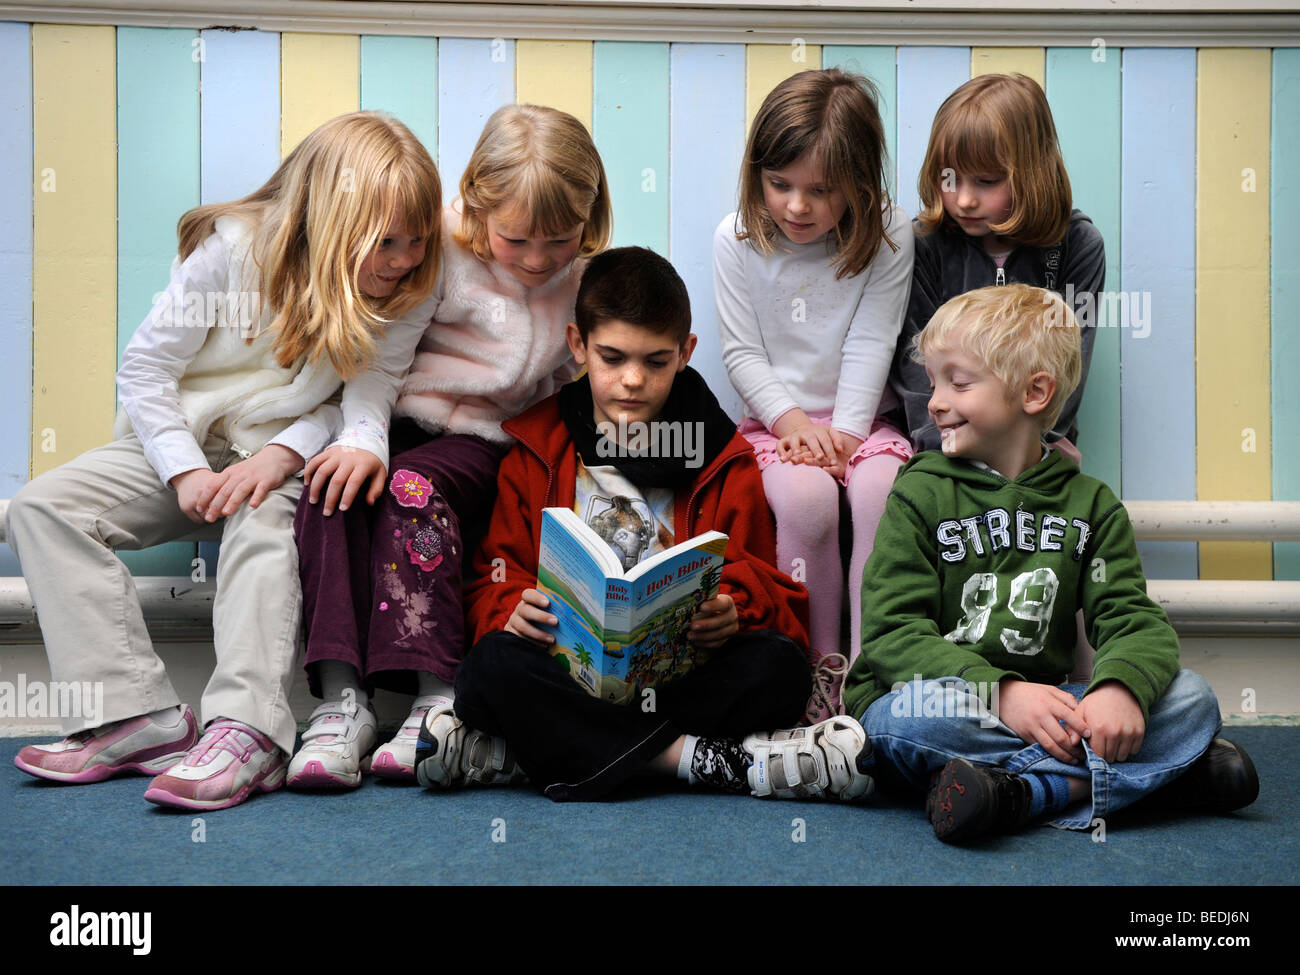 A GROUP OF FOUR GIRLS AND TWO BOYS READING A BIBLE TOGETHER AT A SUNDAY SCHOOL UK - Stock Image